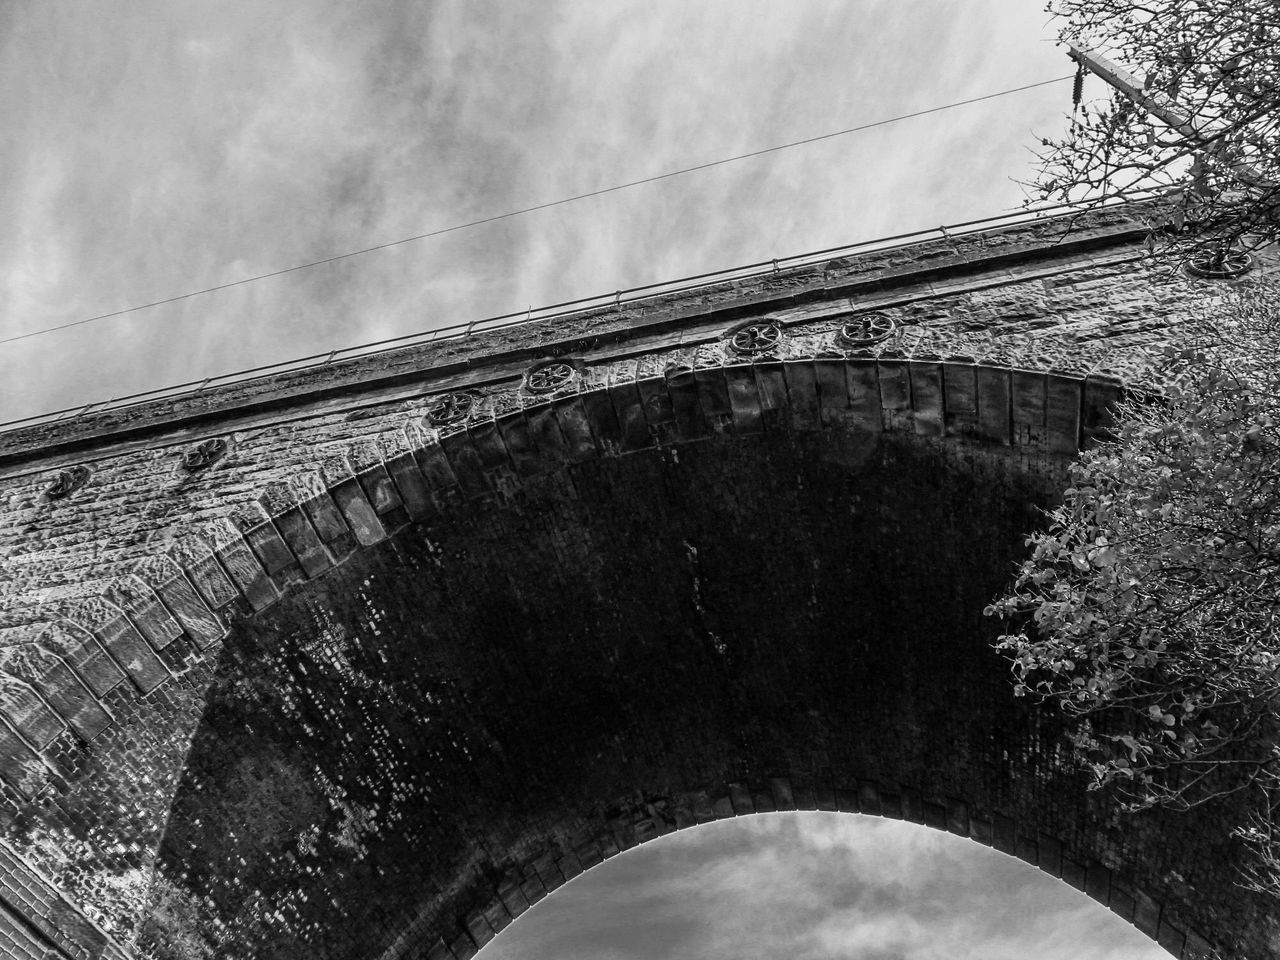 architecture, built structure, arch, day, outdoors, low angle view, connection, bridge - man made structure, sky, no people, cloud - sky, building exterior, nature